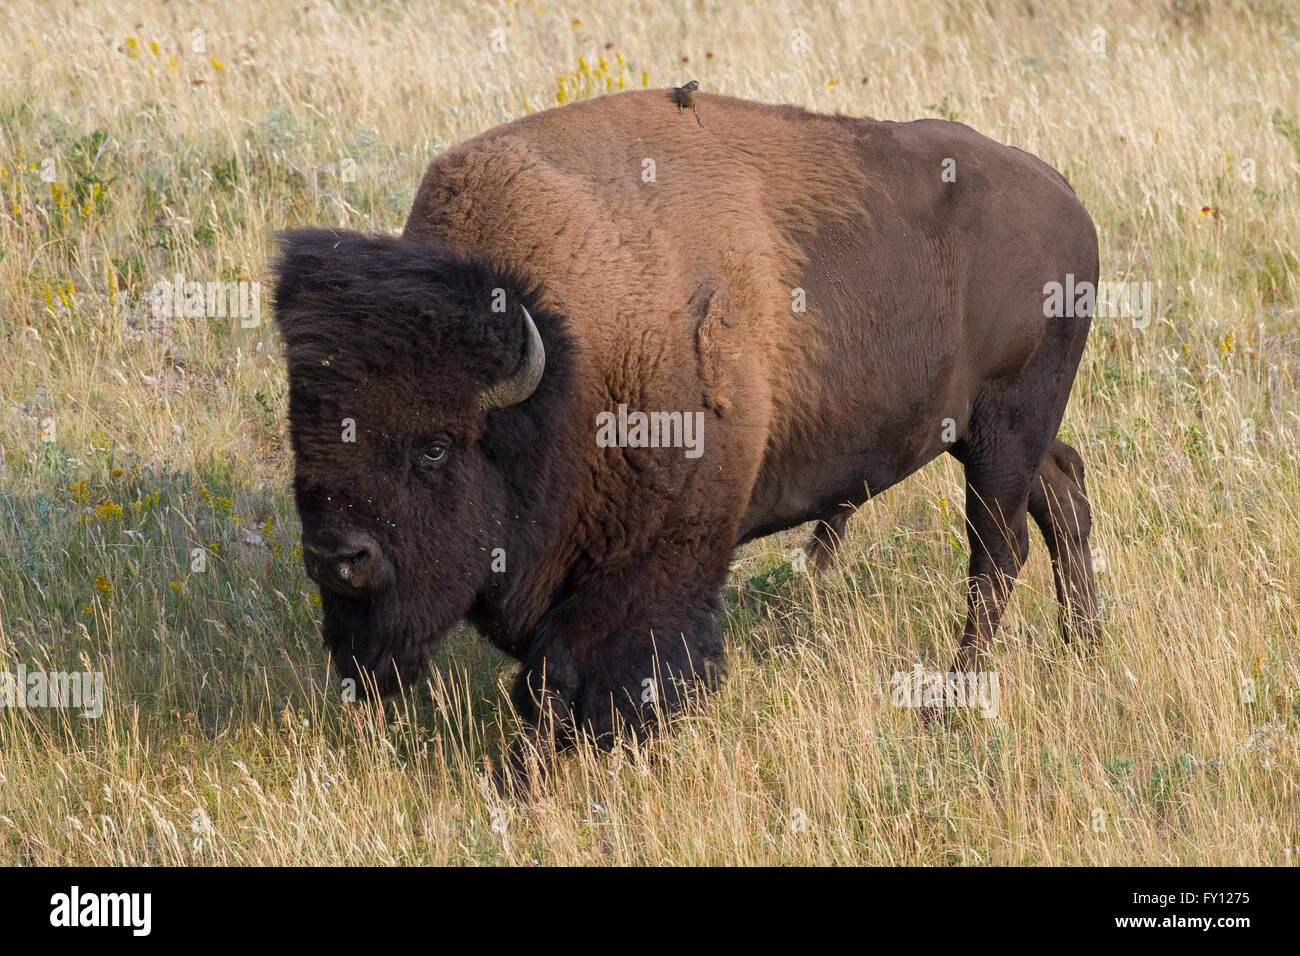 American bison / American buffalo (Bison bison) bull in summer, Waterton Lakes National Park, Alberta, Canada - Stock Image